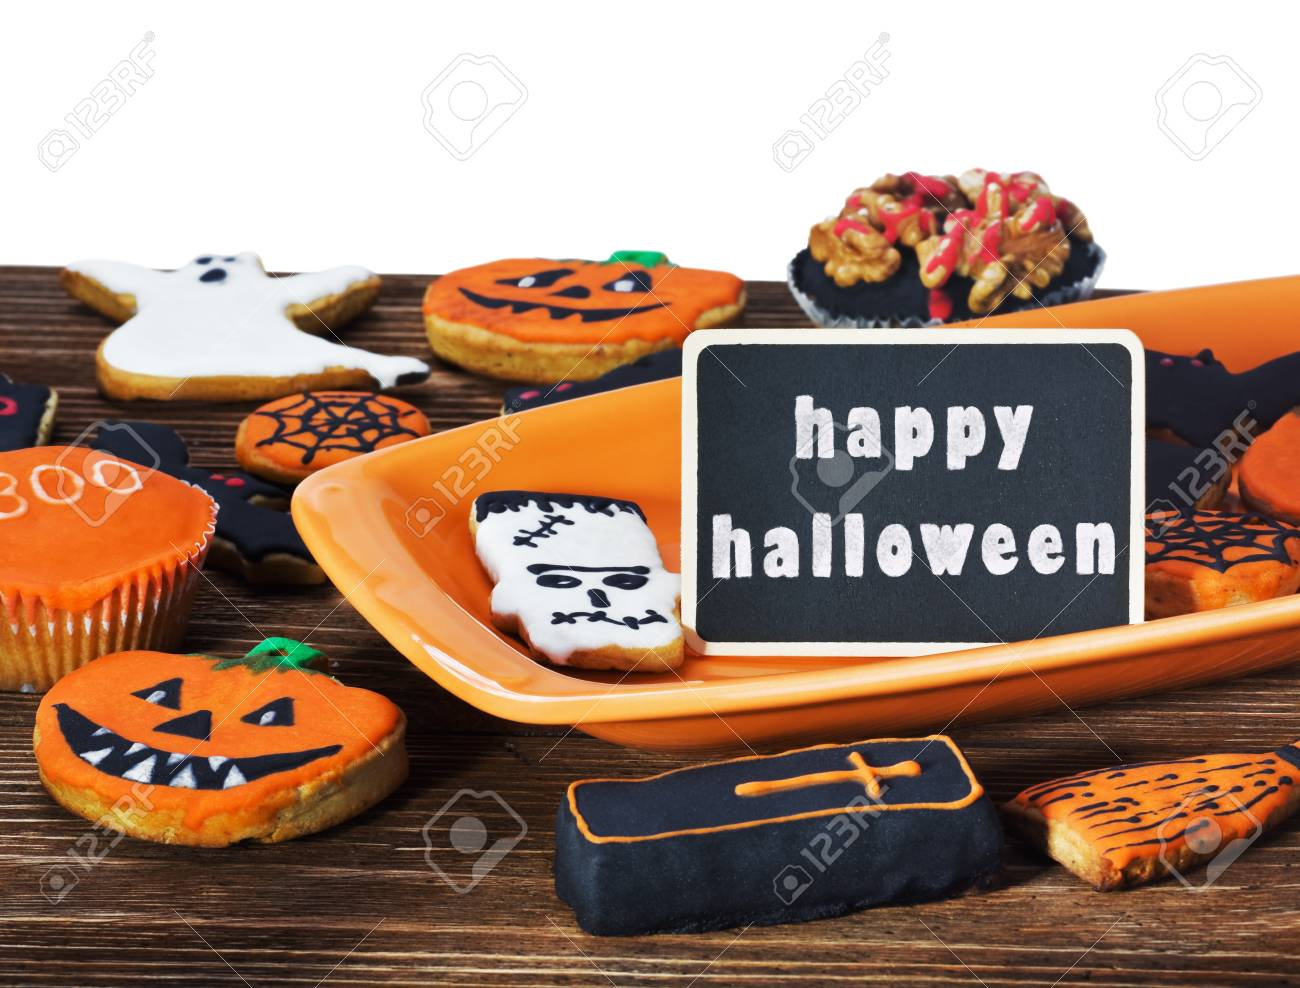 halloween cookies on a plate orange and black label and holiday greetings stock photo 21986602